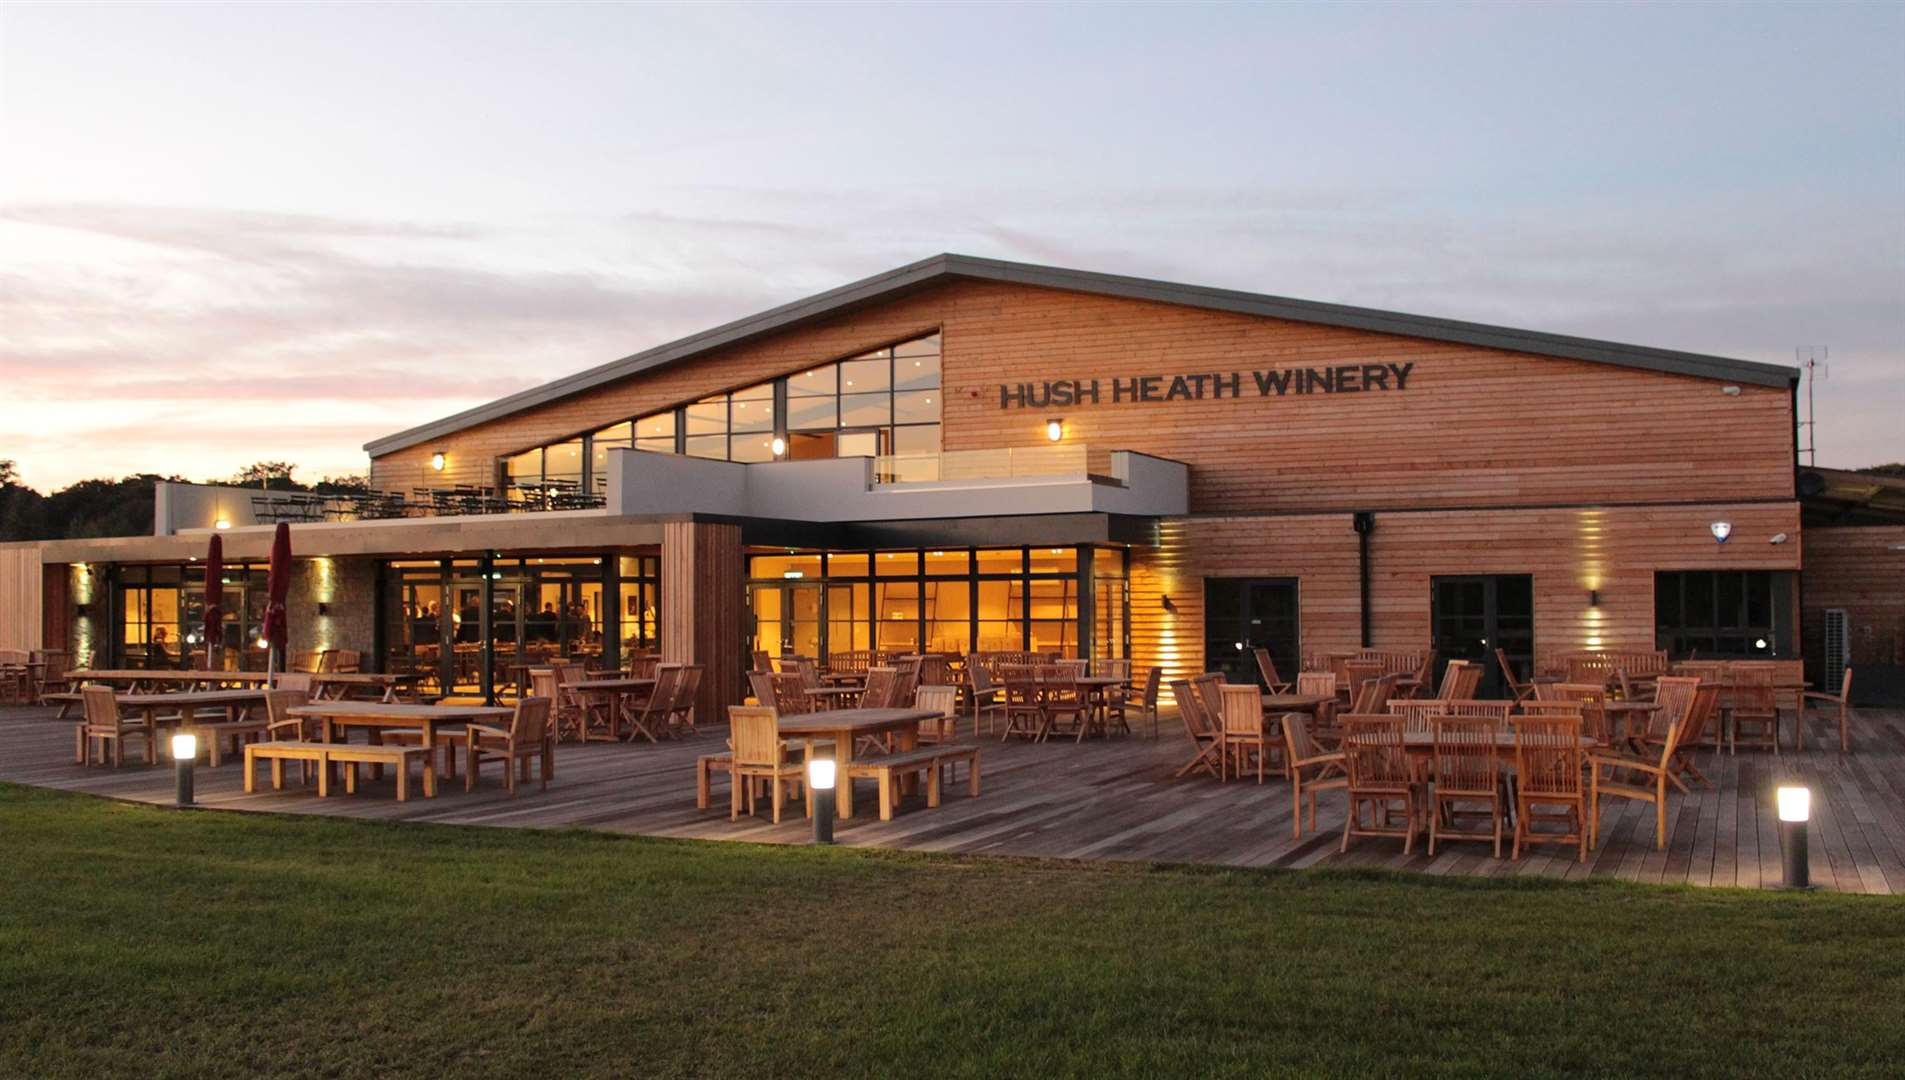 Hush Heath Winery in Staplehurst will be helping to raise funds for the Tree of Hope charity